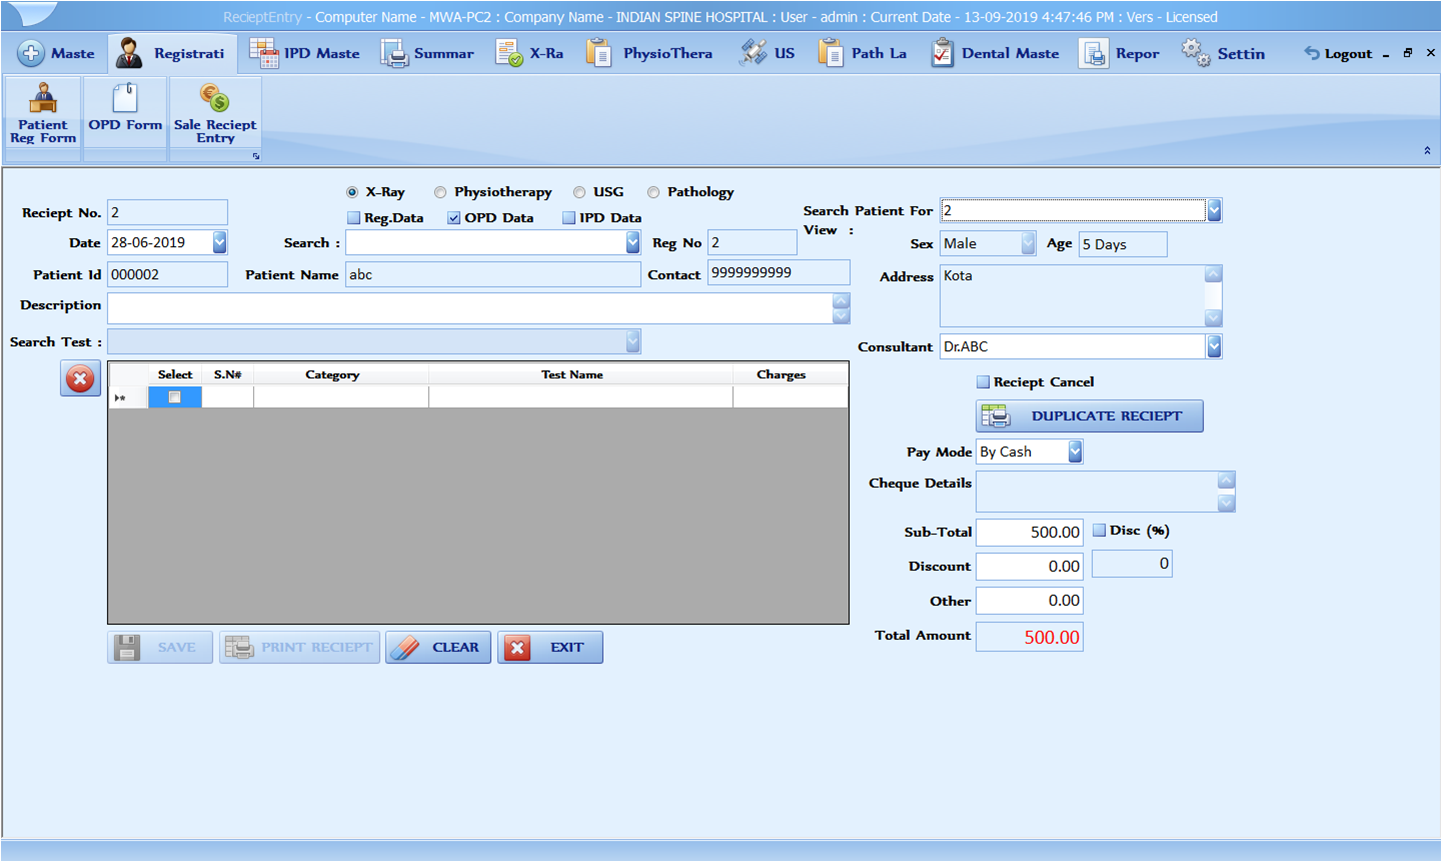 Hospital  erp software - MyWebApp Software and Analytics